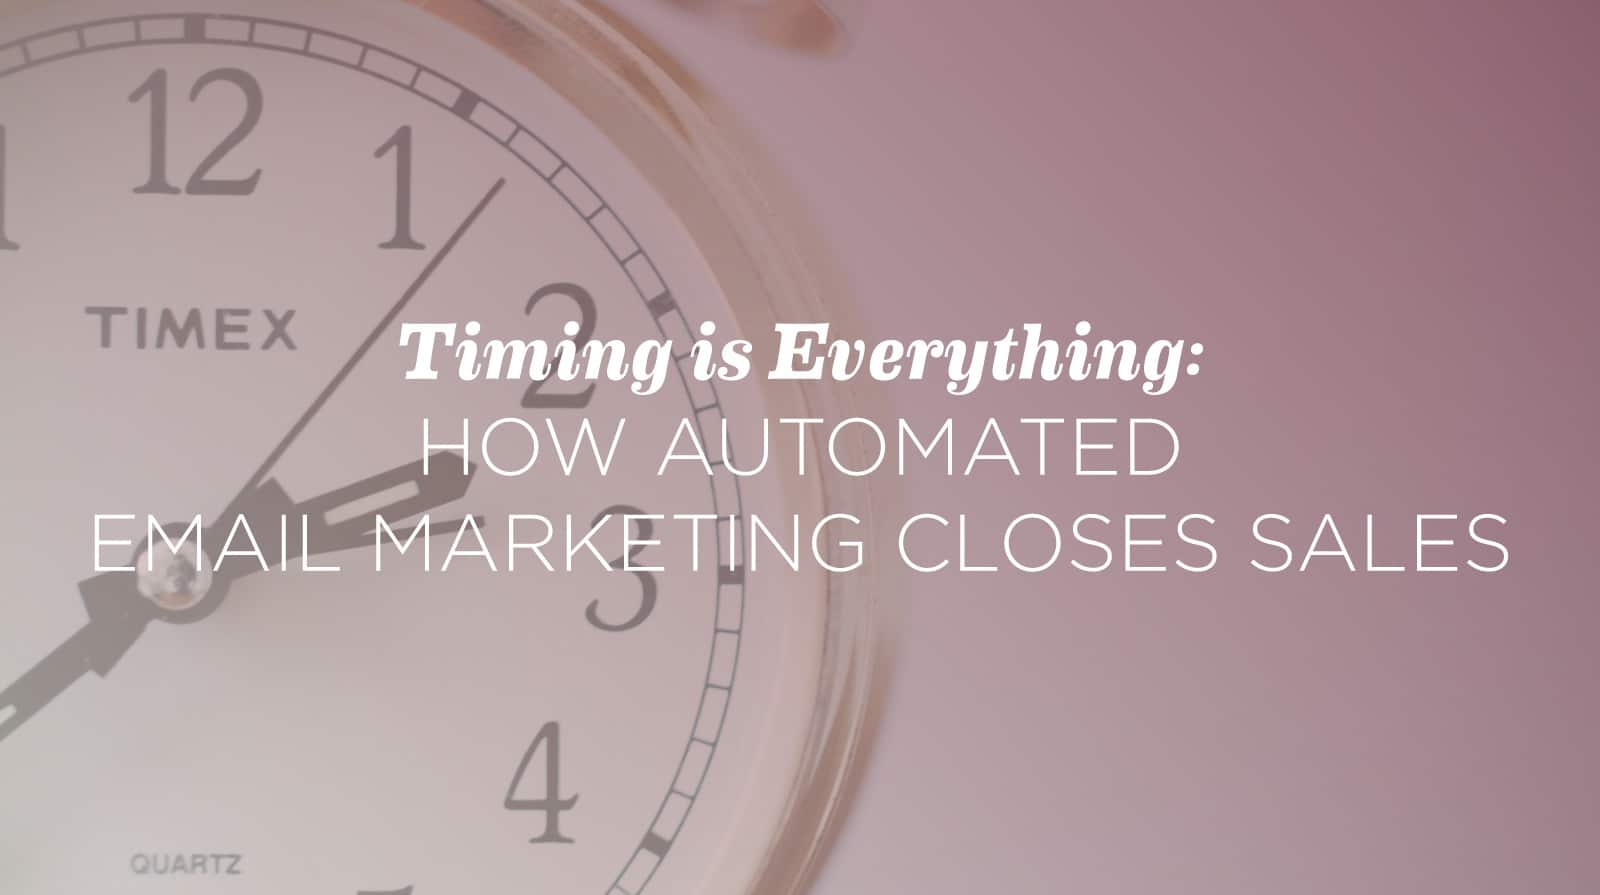 Timing is Everything: How Automated Email Marketing Closes Sales